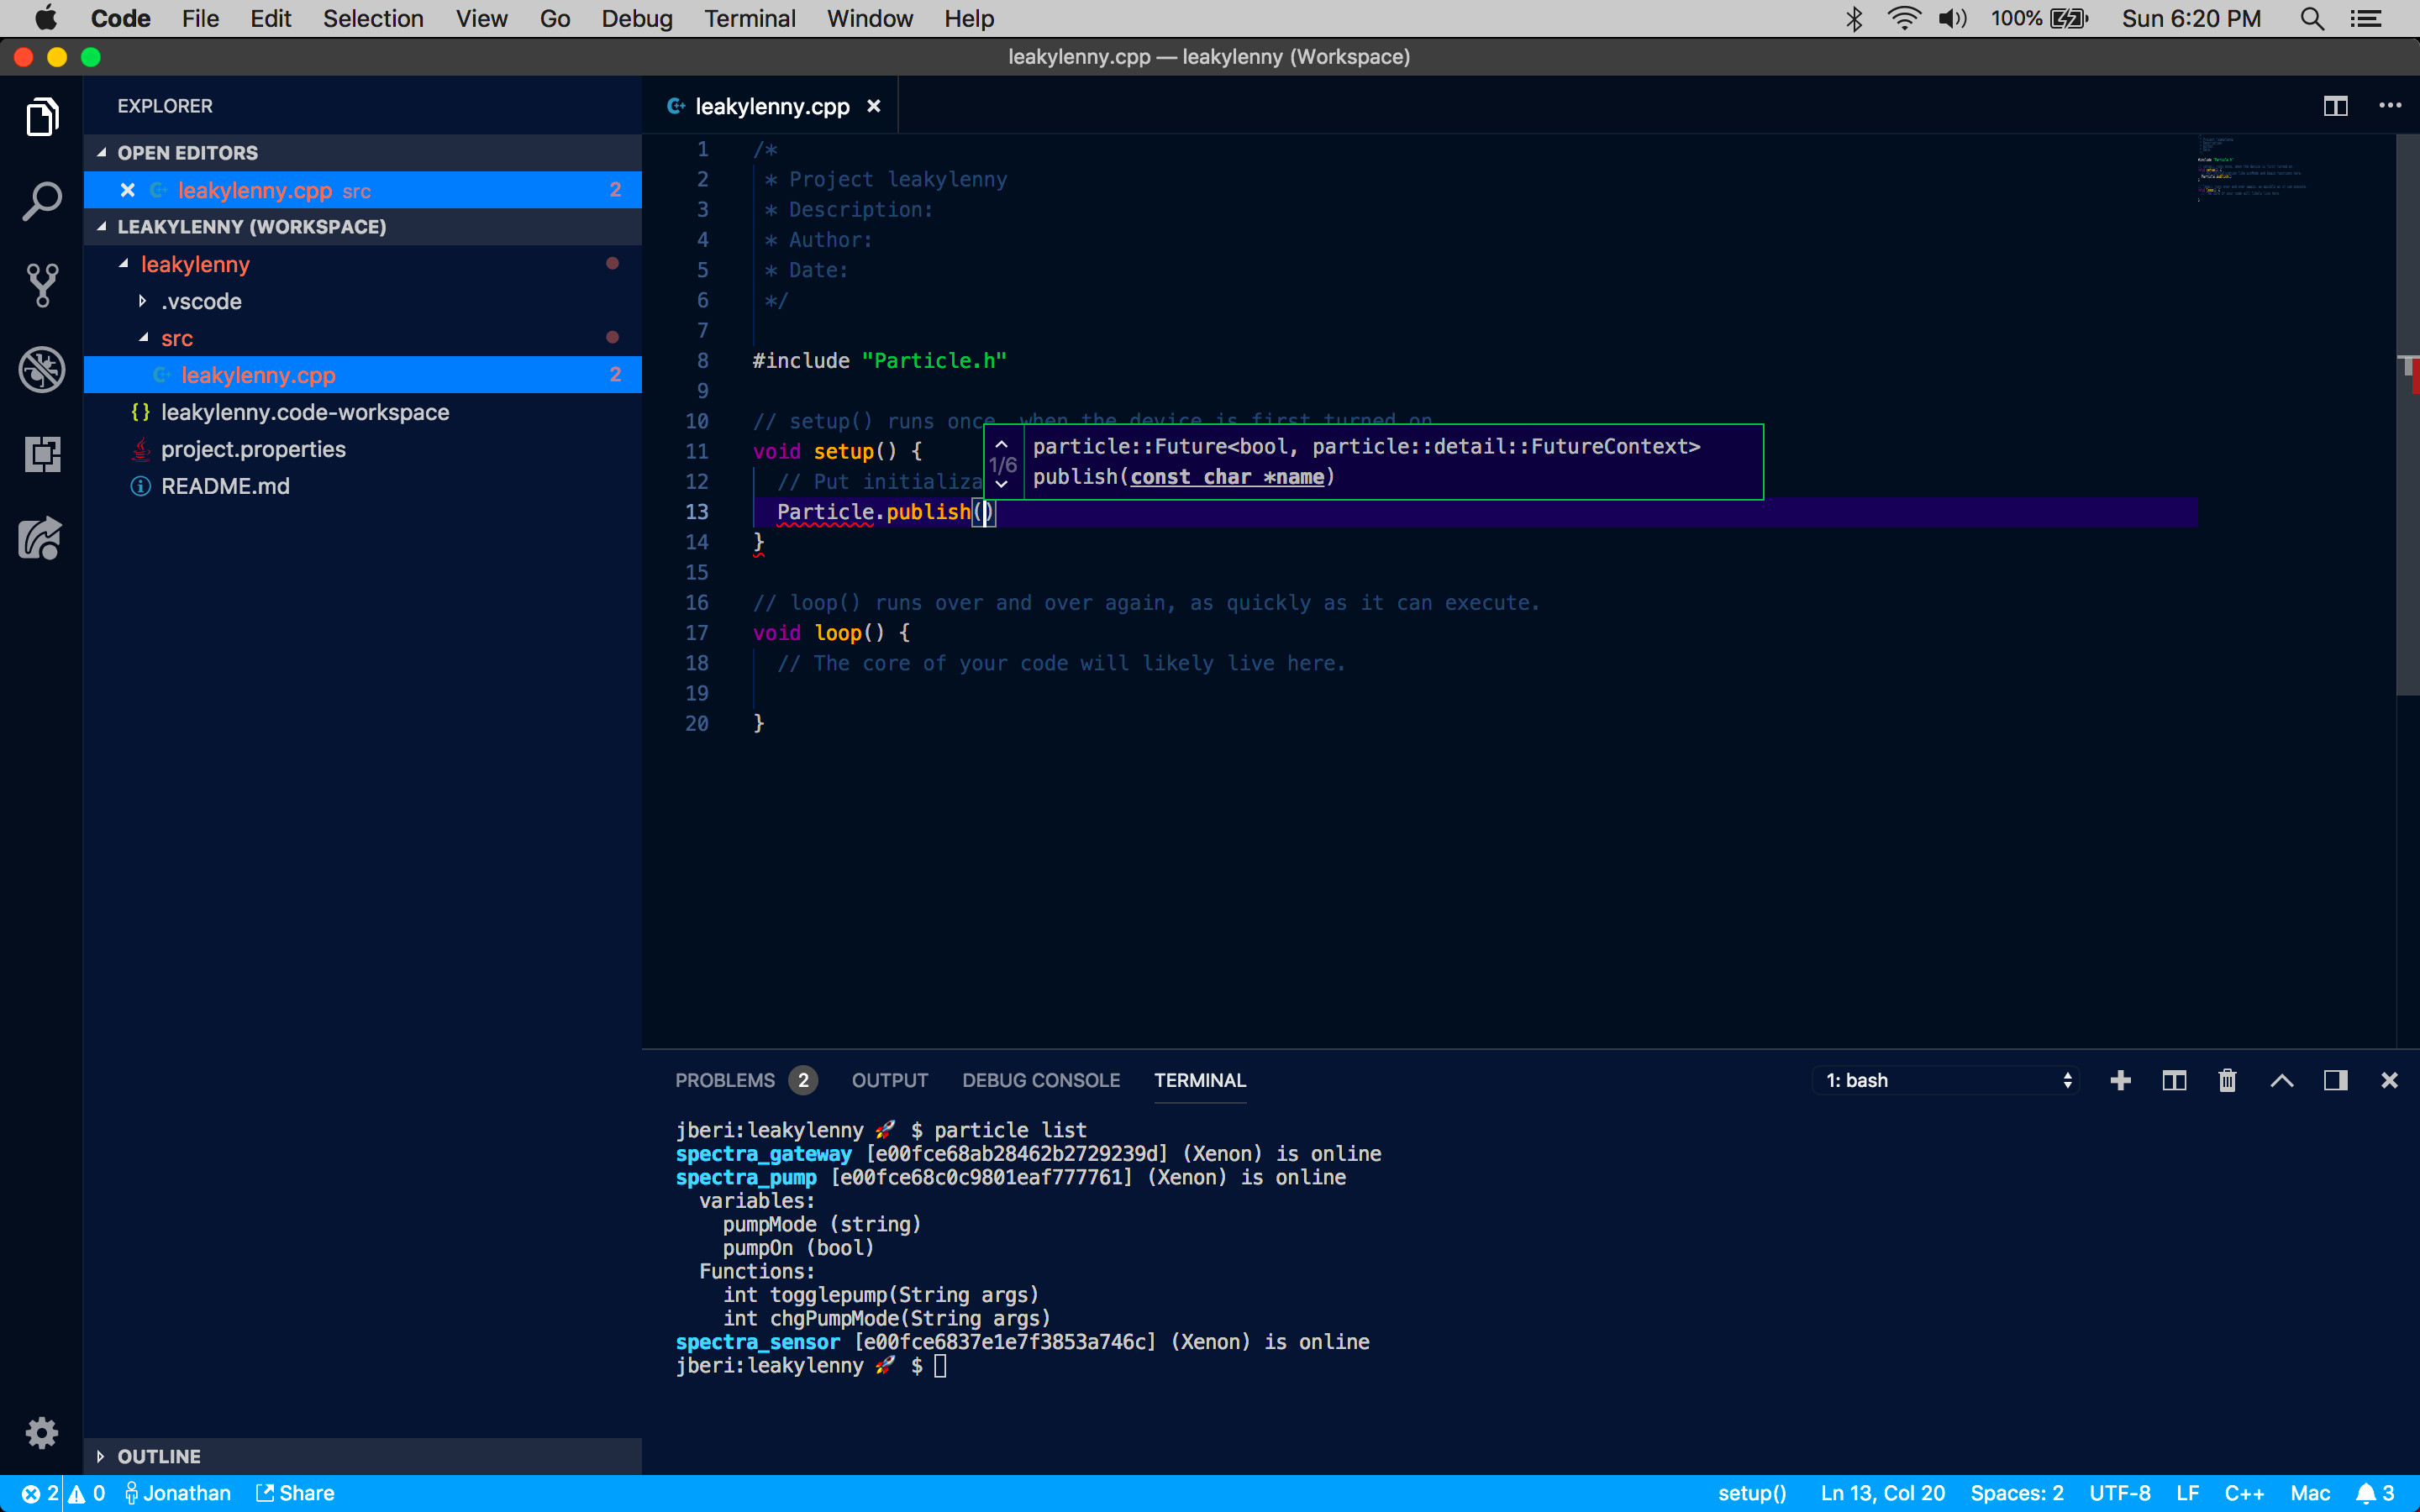 Particle Unveils Mesh SoMs and IoT Developer Tools